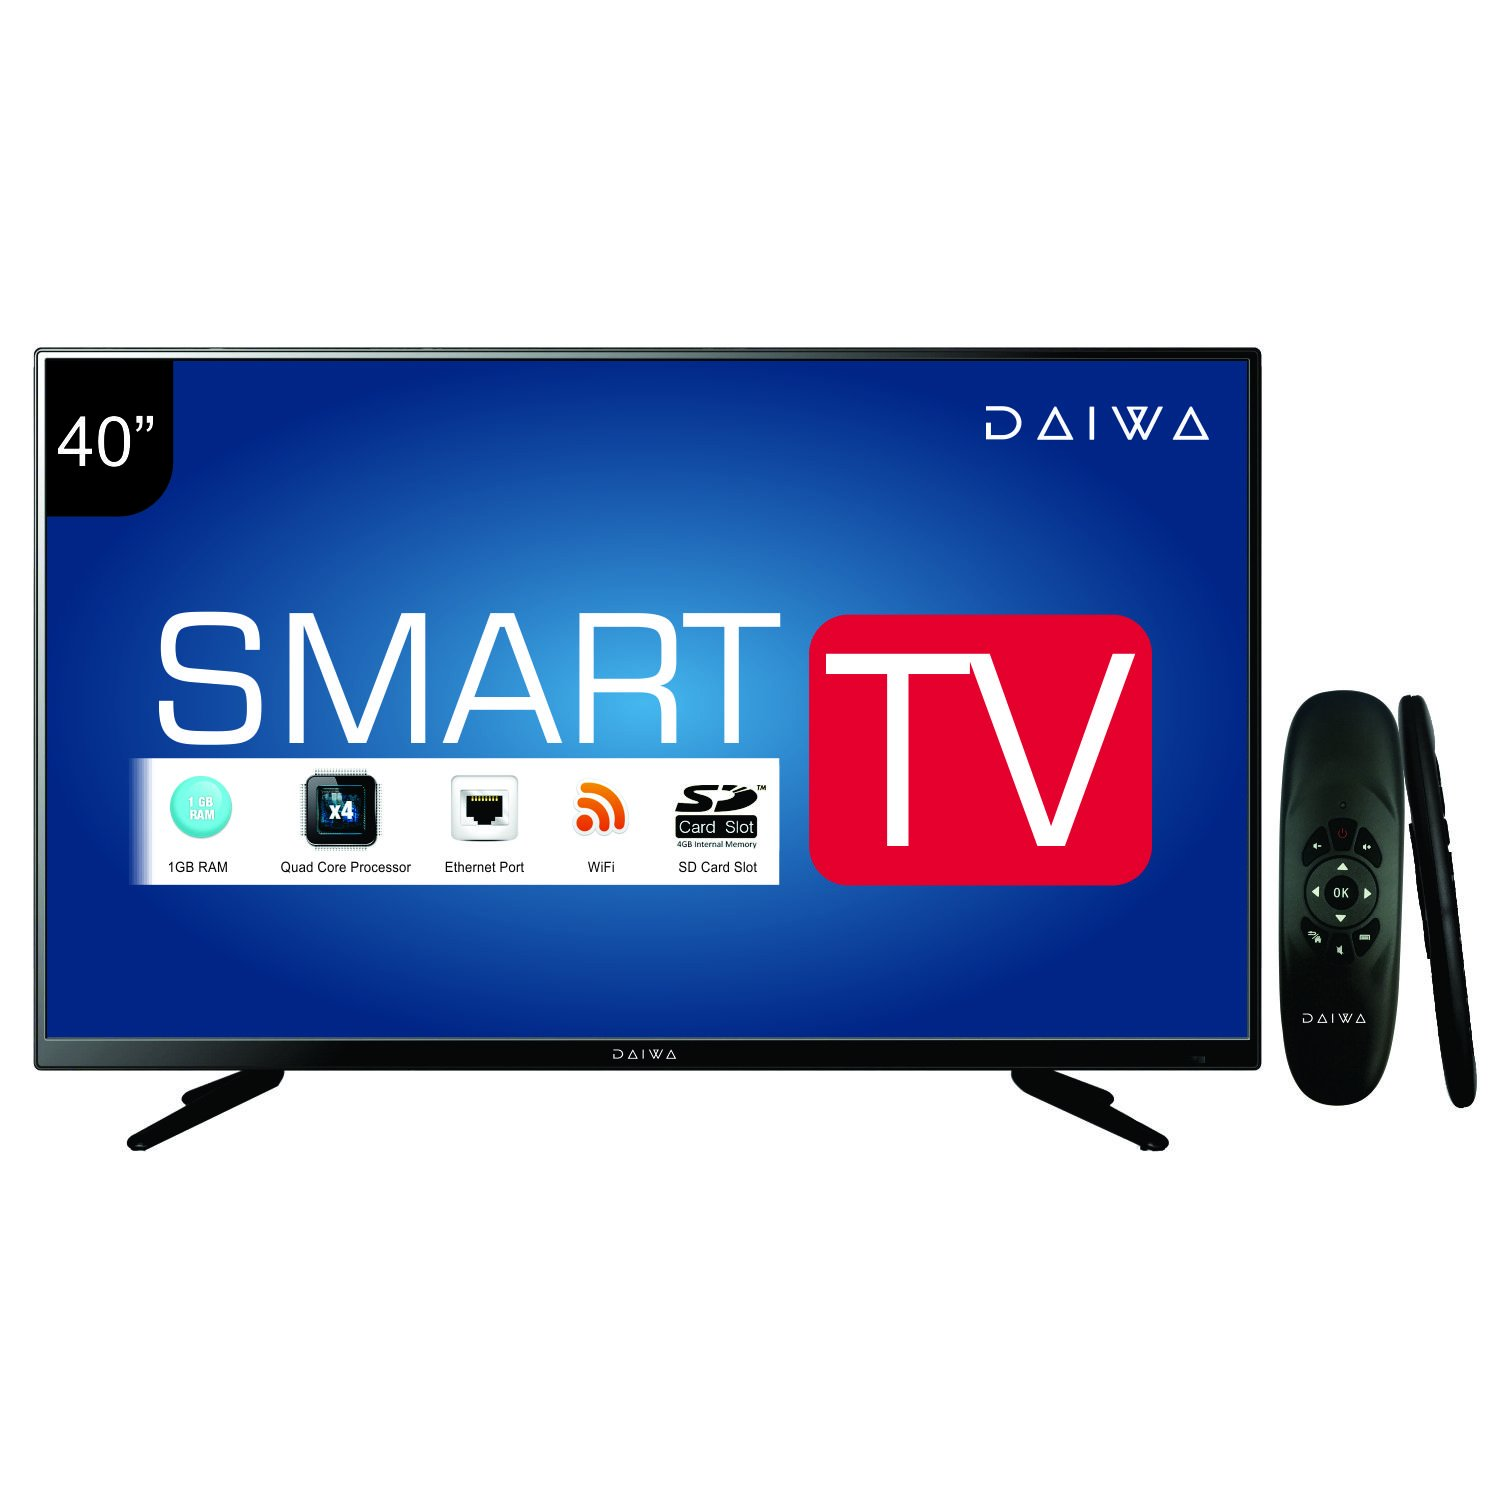 Daiwa D42C4S 40 Inch Smart Full HD LED TV (With Web Cruiser Remote)